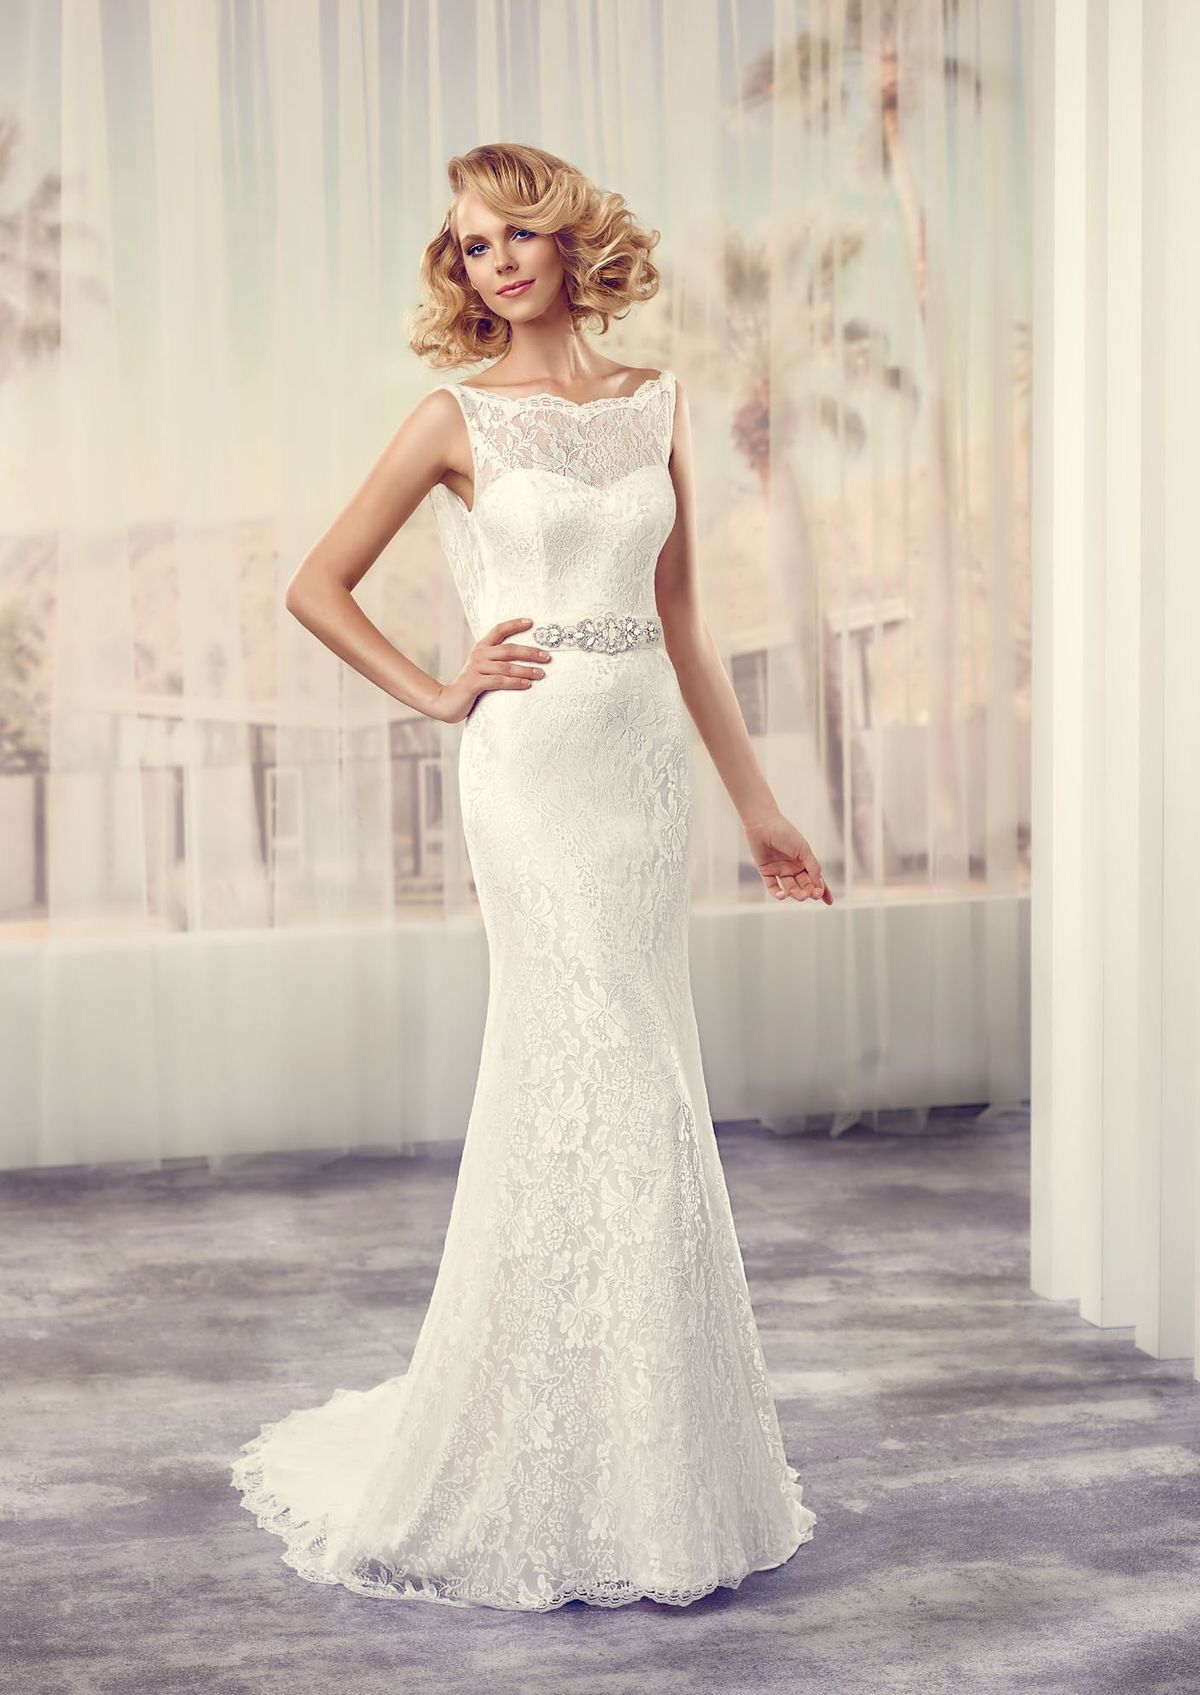 Sindy By Lepapillon Lace Vintage Inspired Wedding Dress Boat Neck With Beautiful Cowel Ba Sheath Wedding Dress Lace Wedding Dresses Lace Ruched Wedding Dress